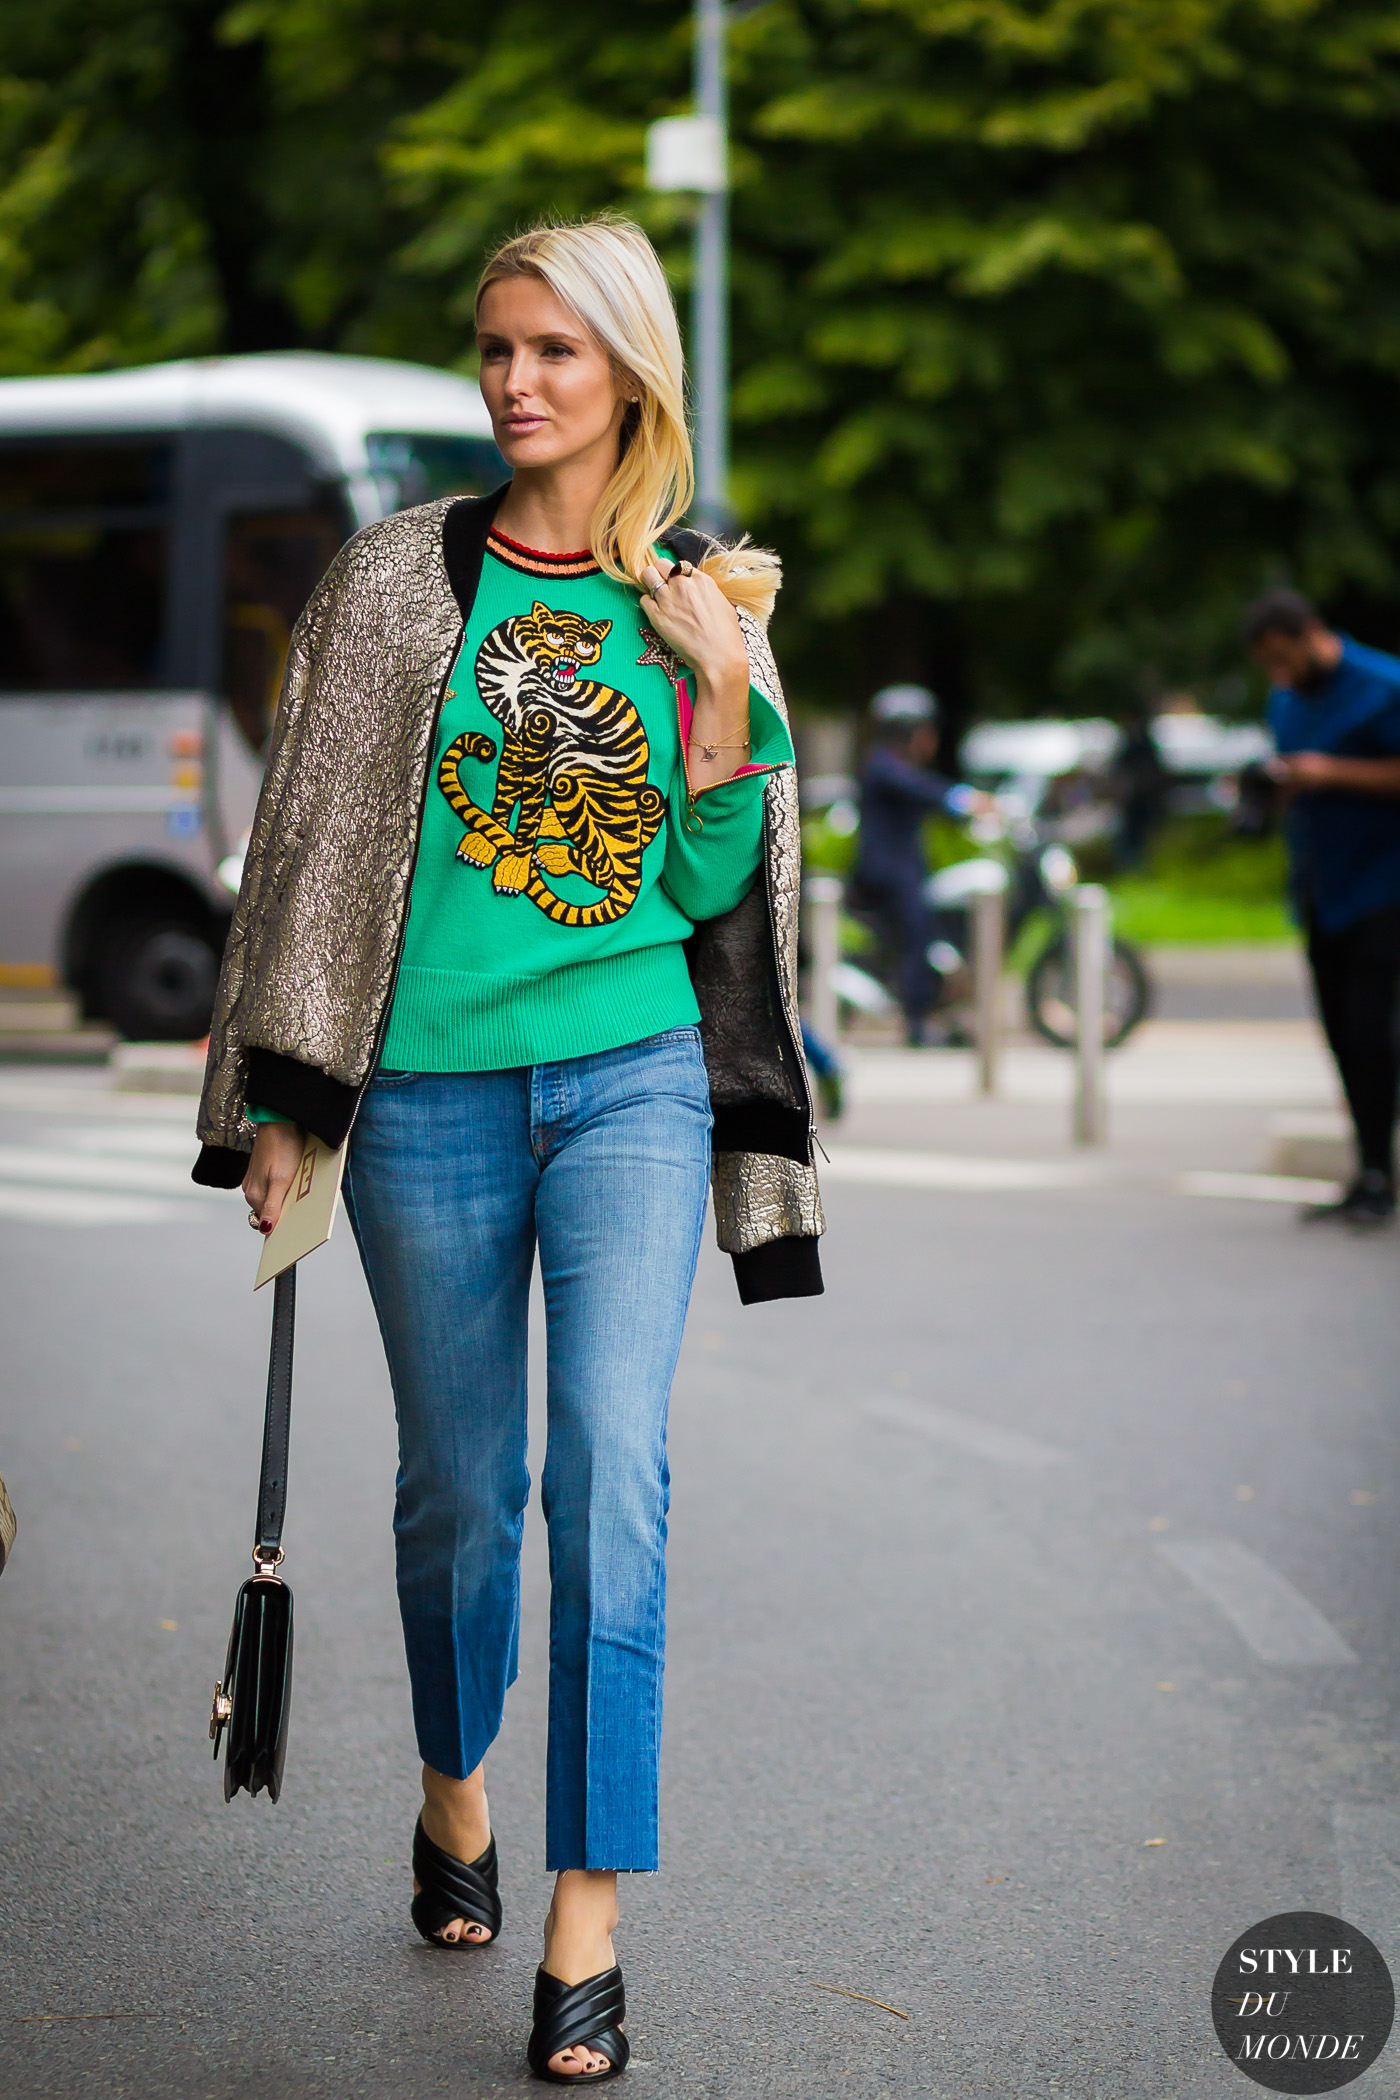 kate-davidson-hudson-by-styledumonde-street-style-fashion-photography